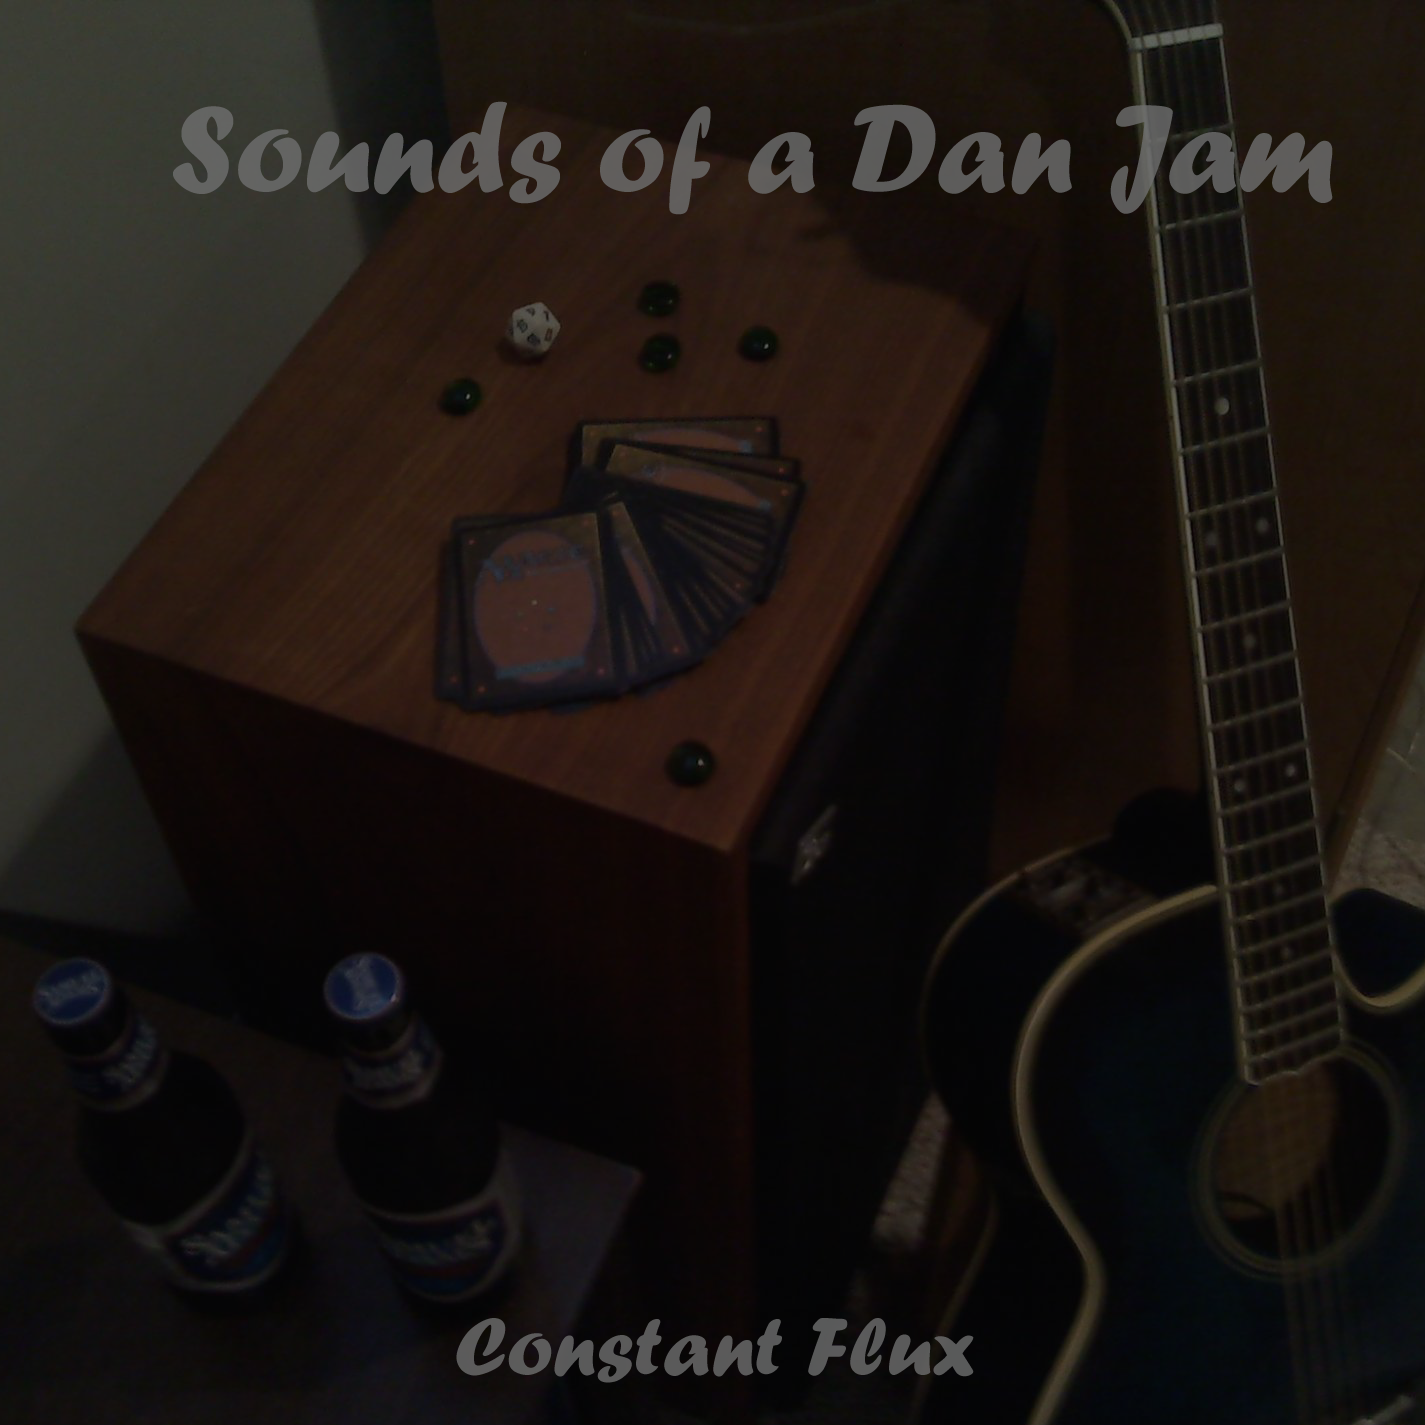 The album cover for Constant Flux's Sounds of a Dan Jam